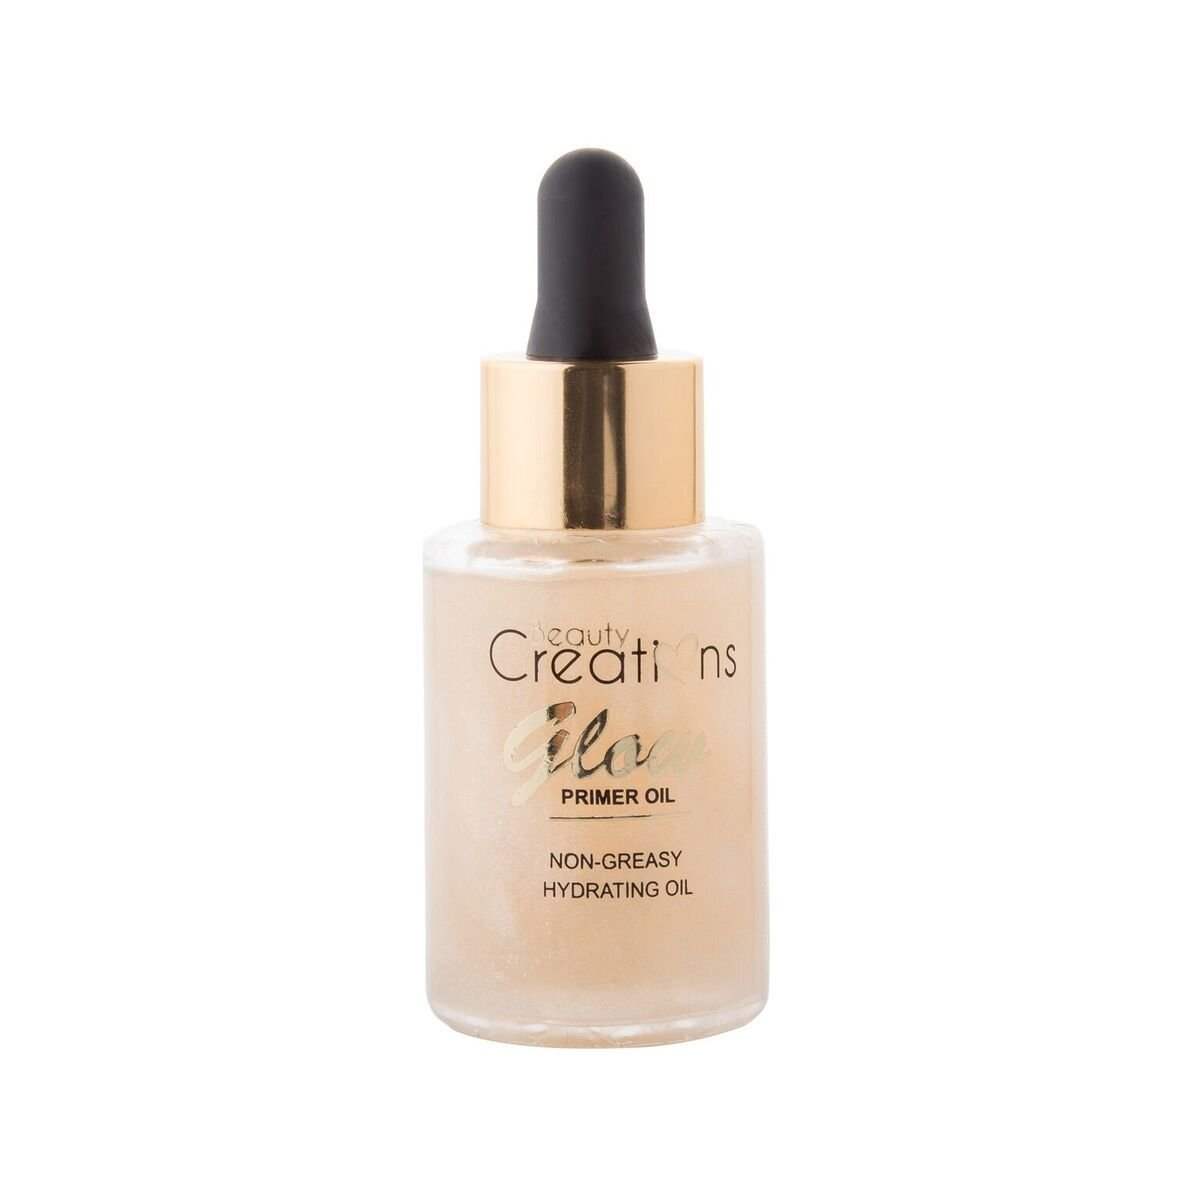 Beauty Creations Glow Primer Oil (Non-Greasy, Hydrating Oil)